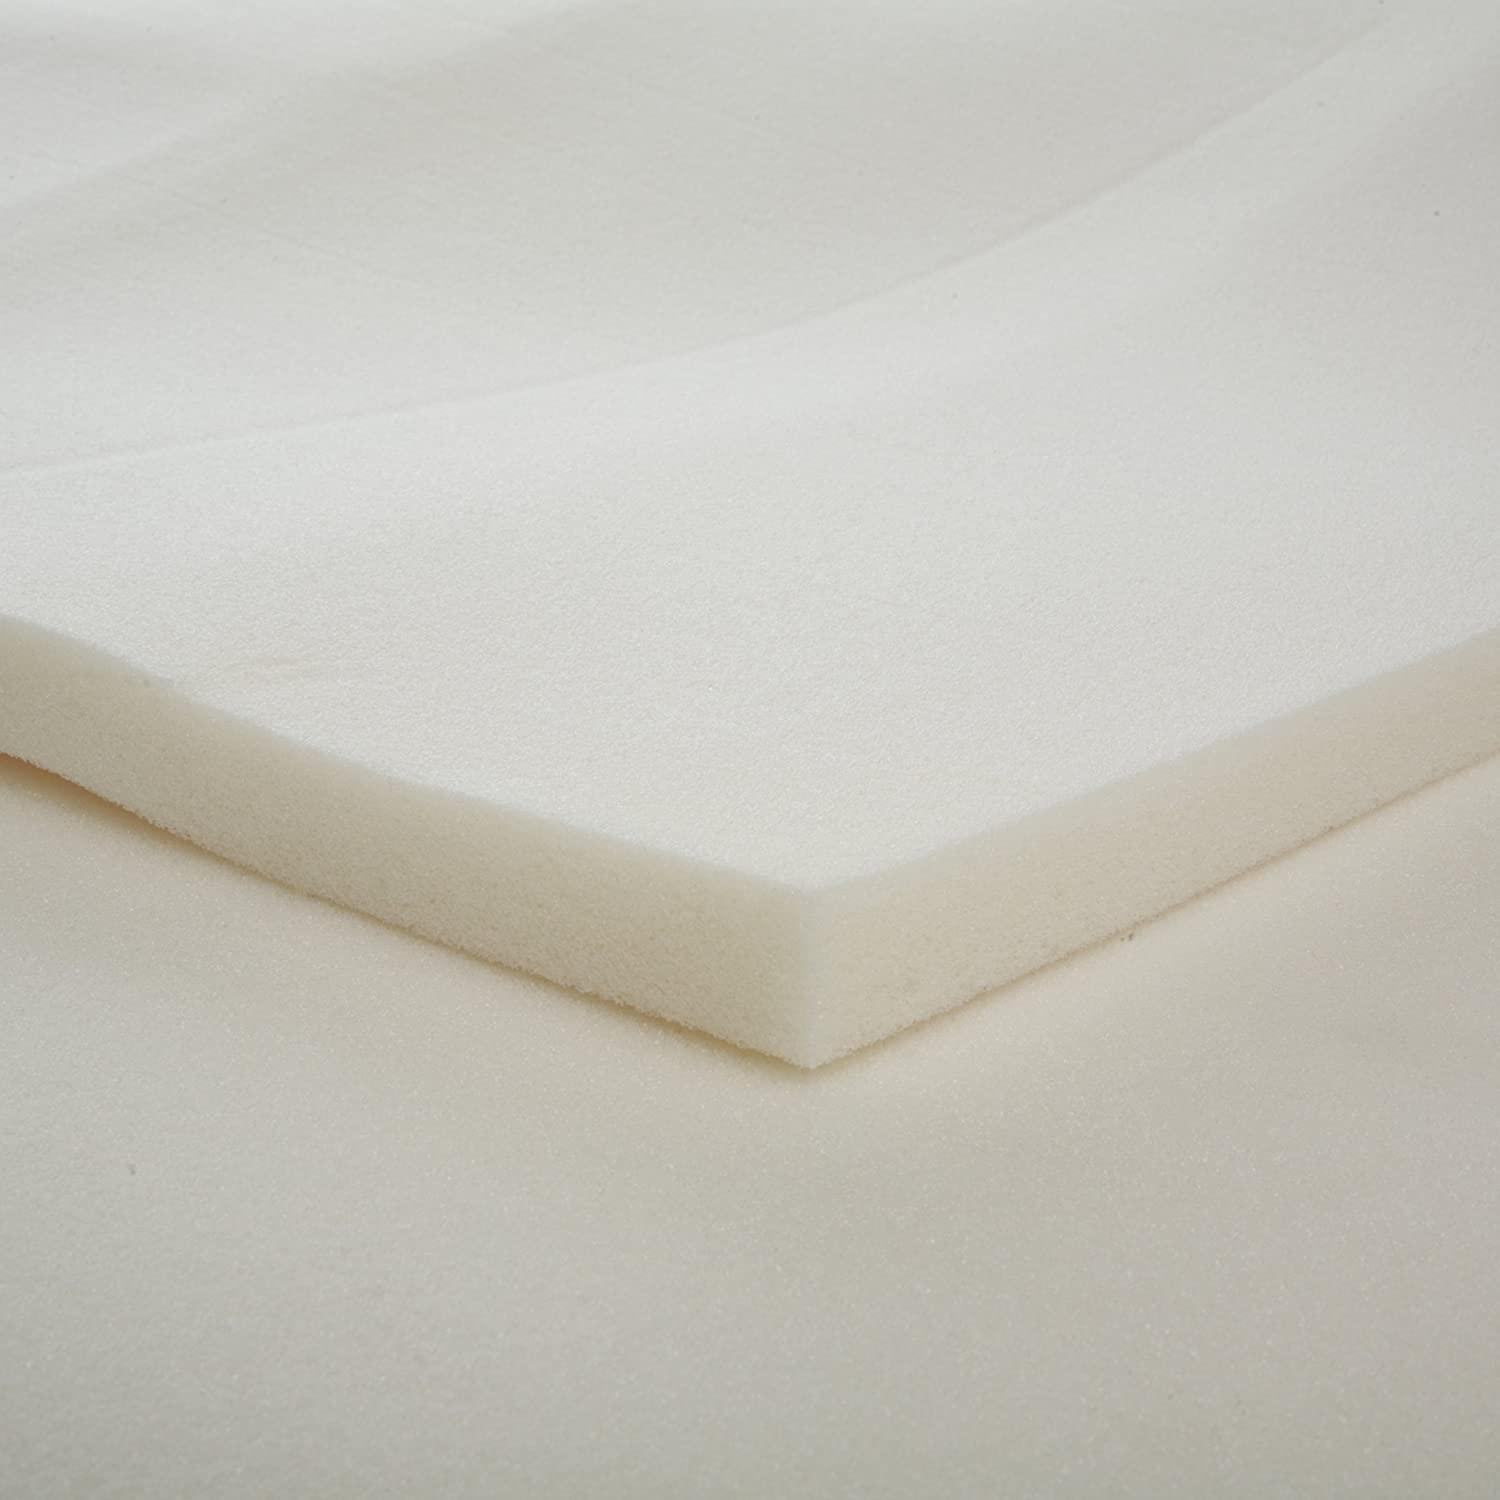 product splendorest bedding size bath queen inch topper king mattress memory foam